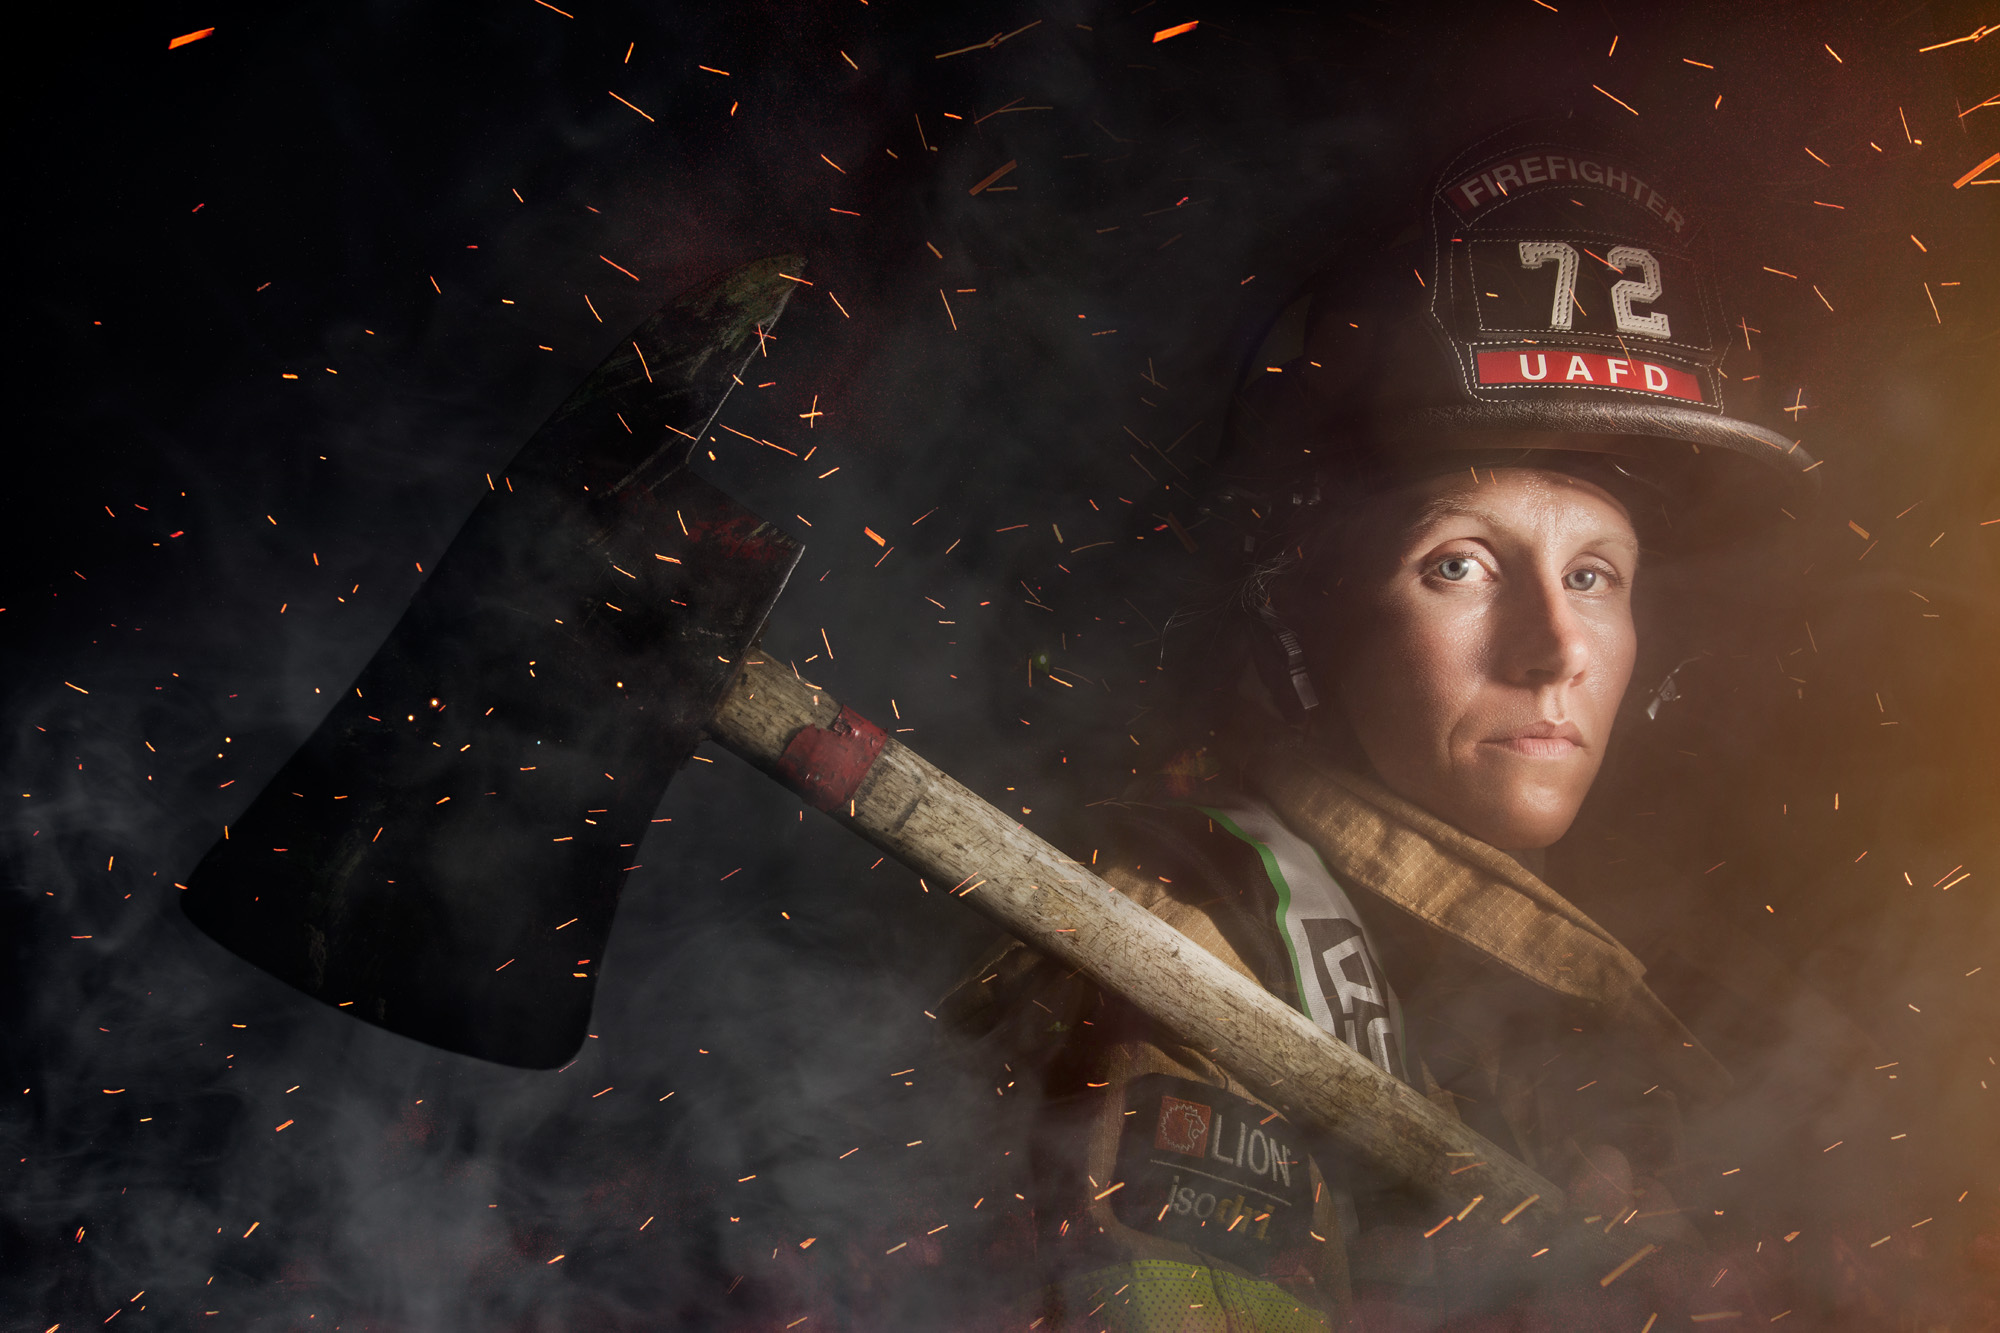 cc2016036 - Mindy Gabriel, firefighter, Upper Arlington, Ohio, for Women